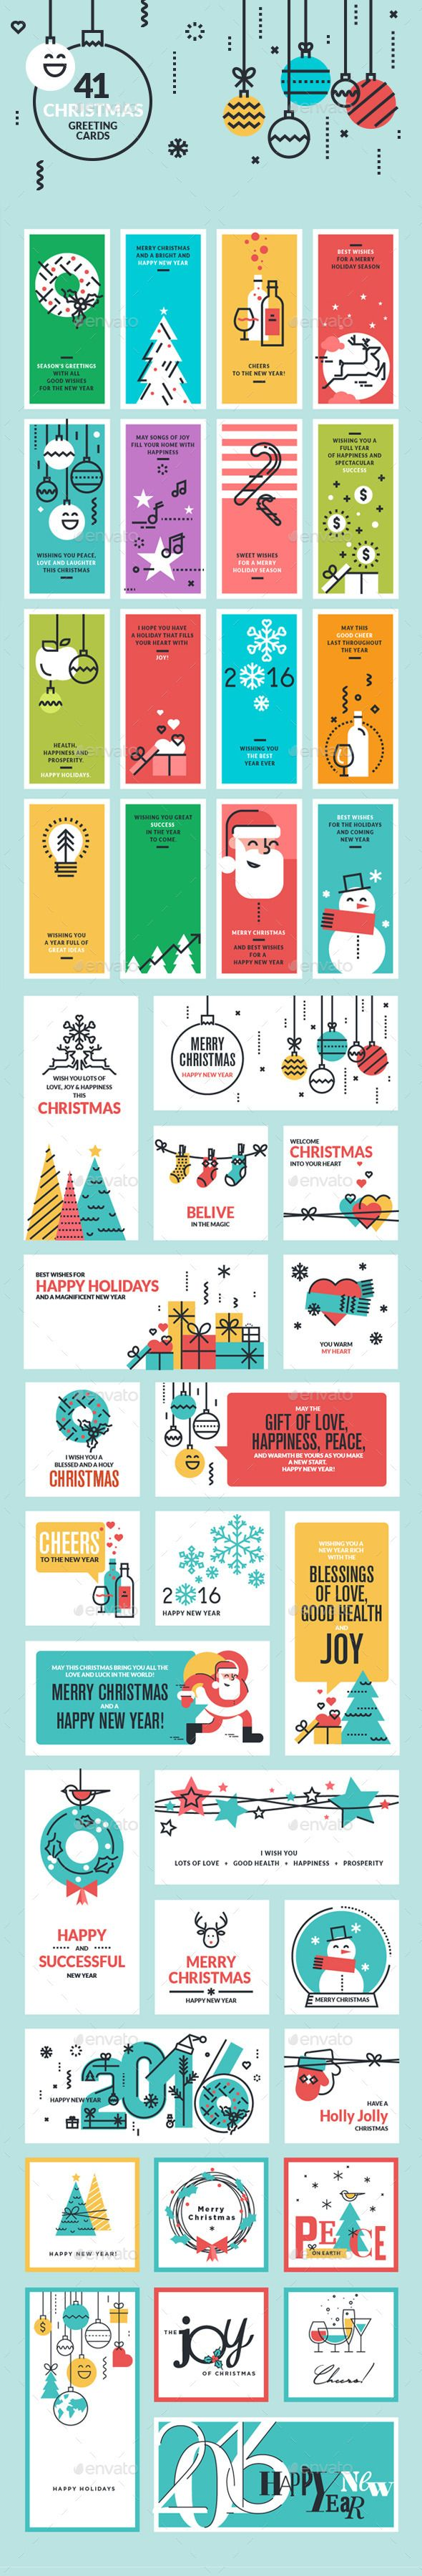 Christmas and New Year Greeting Cards and Banners Template Vector EPS, AI, PSD #design Download: http://graphicriver.net/item/christmas-and-new-year-greeting-cards-and-banners/13709542?ref=ksioks